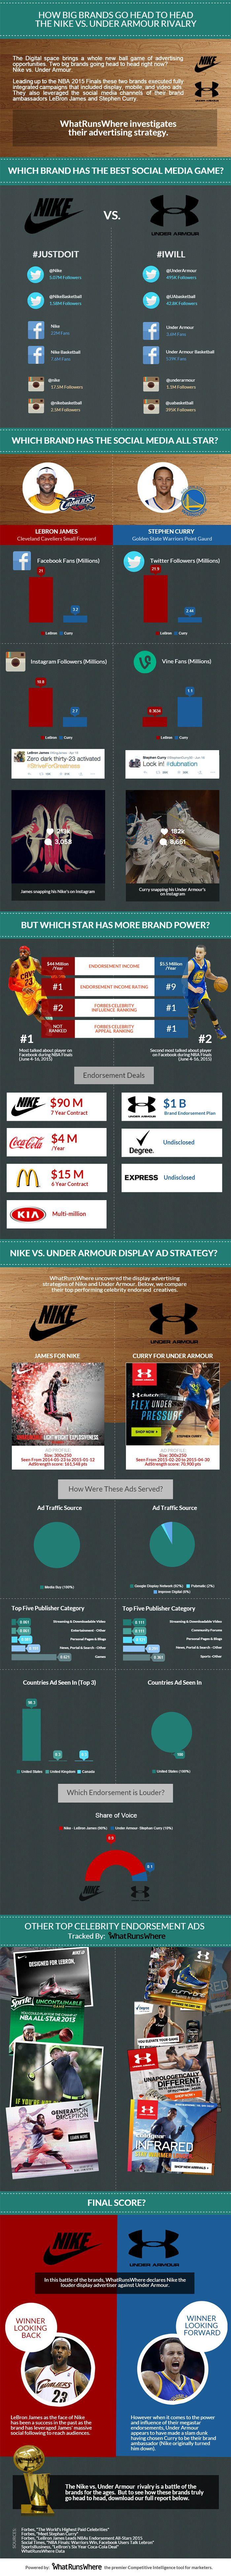 Nike vs. Under Armour. Which brand has the stronger digital media game and more influential Brand Ambassador?